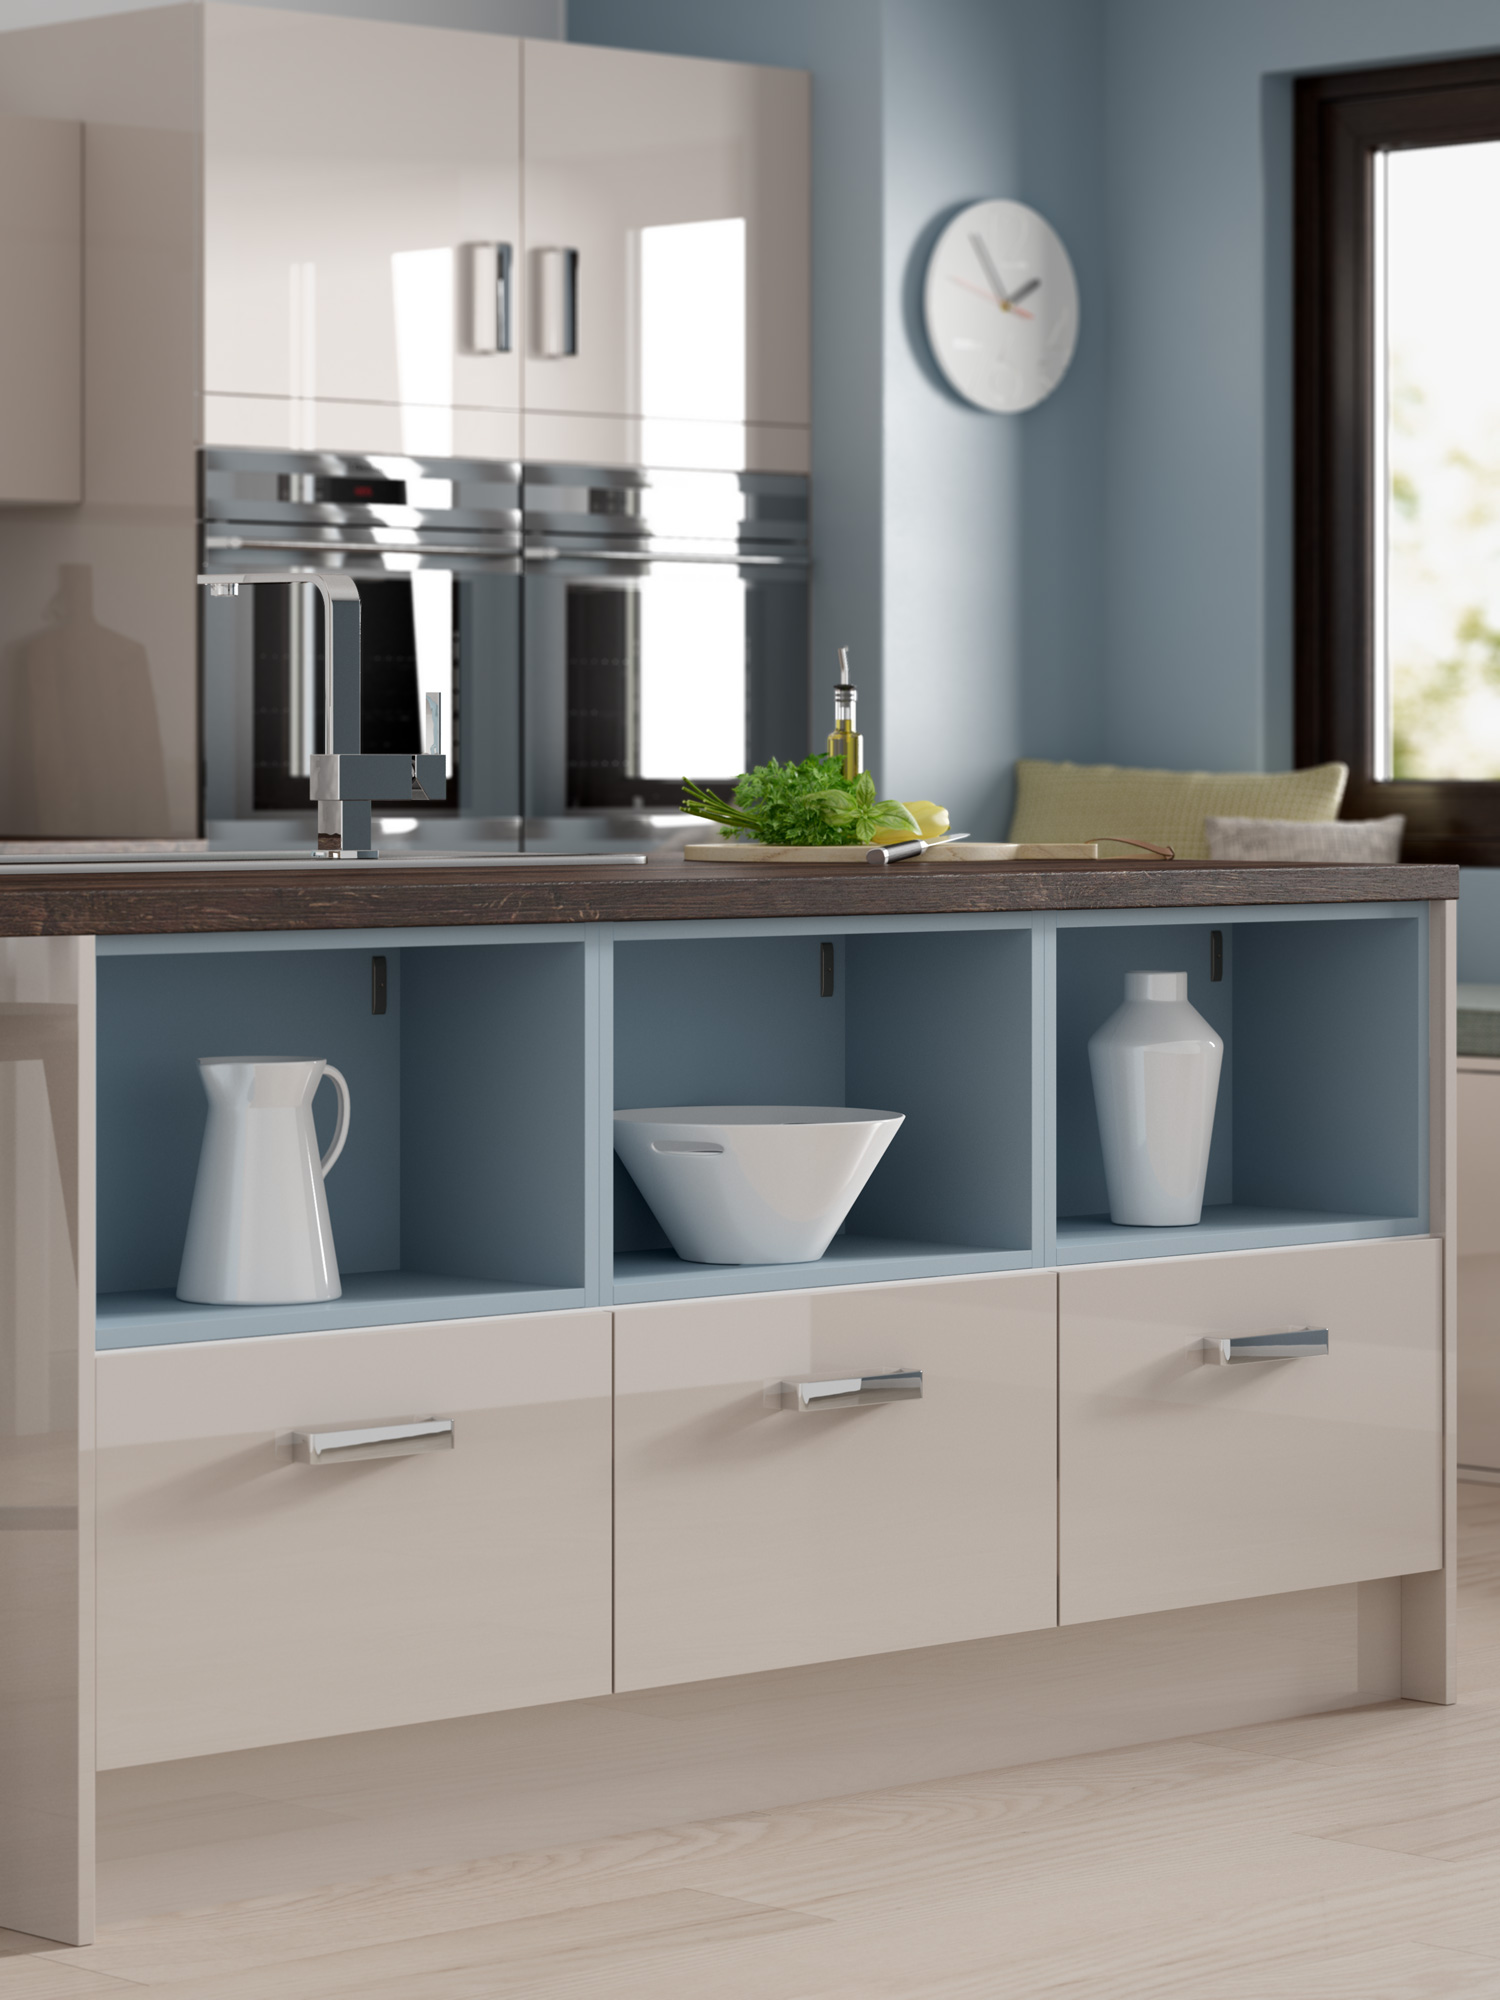 UK Kitchens and Bathrooms The refined luxury of cashmere gloss